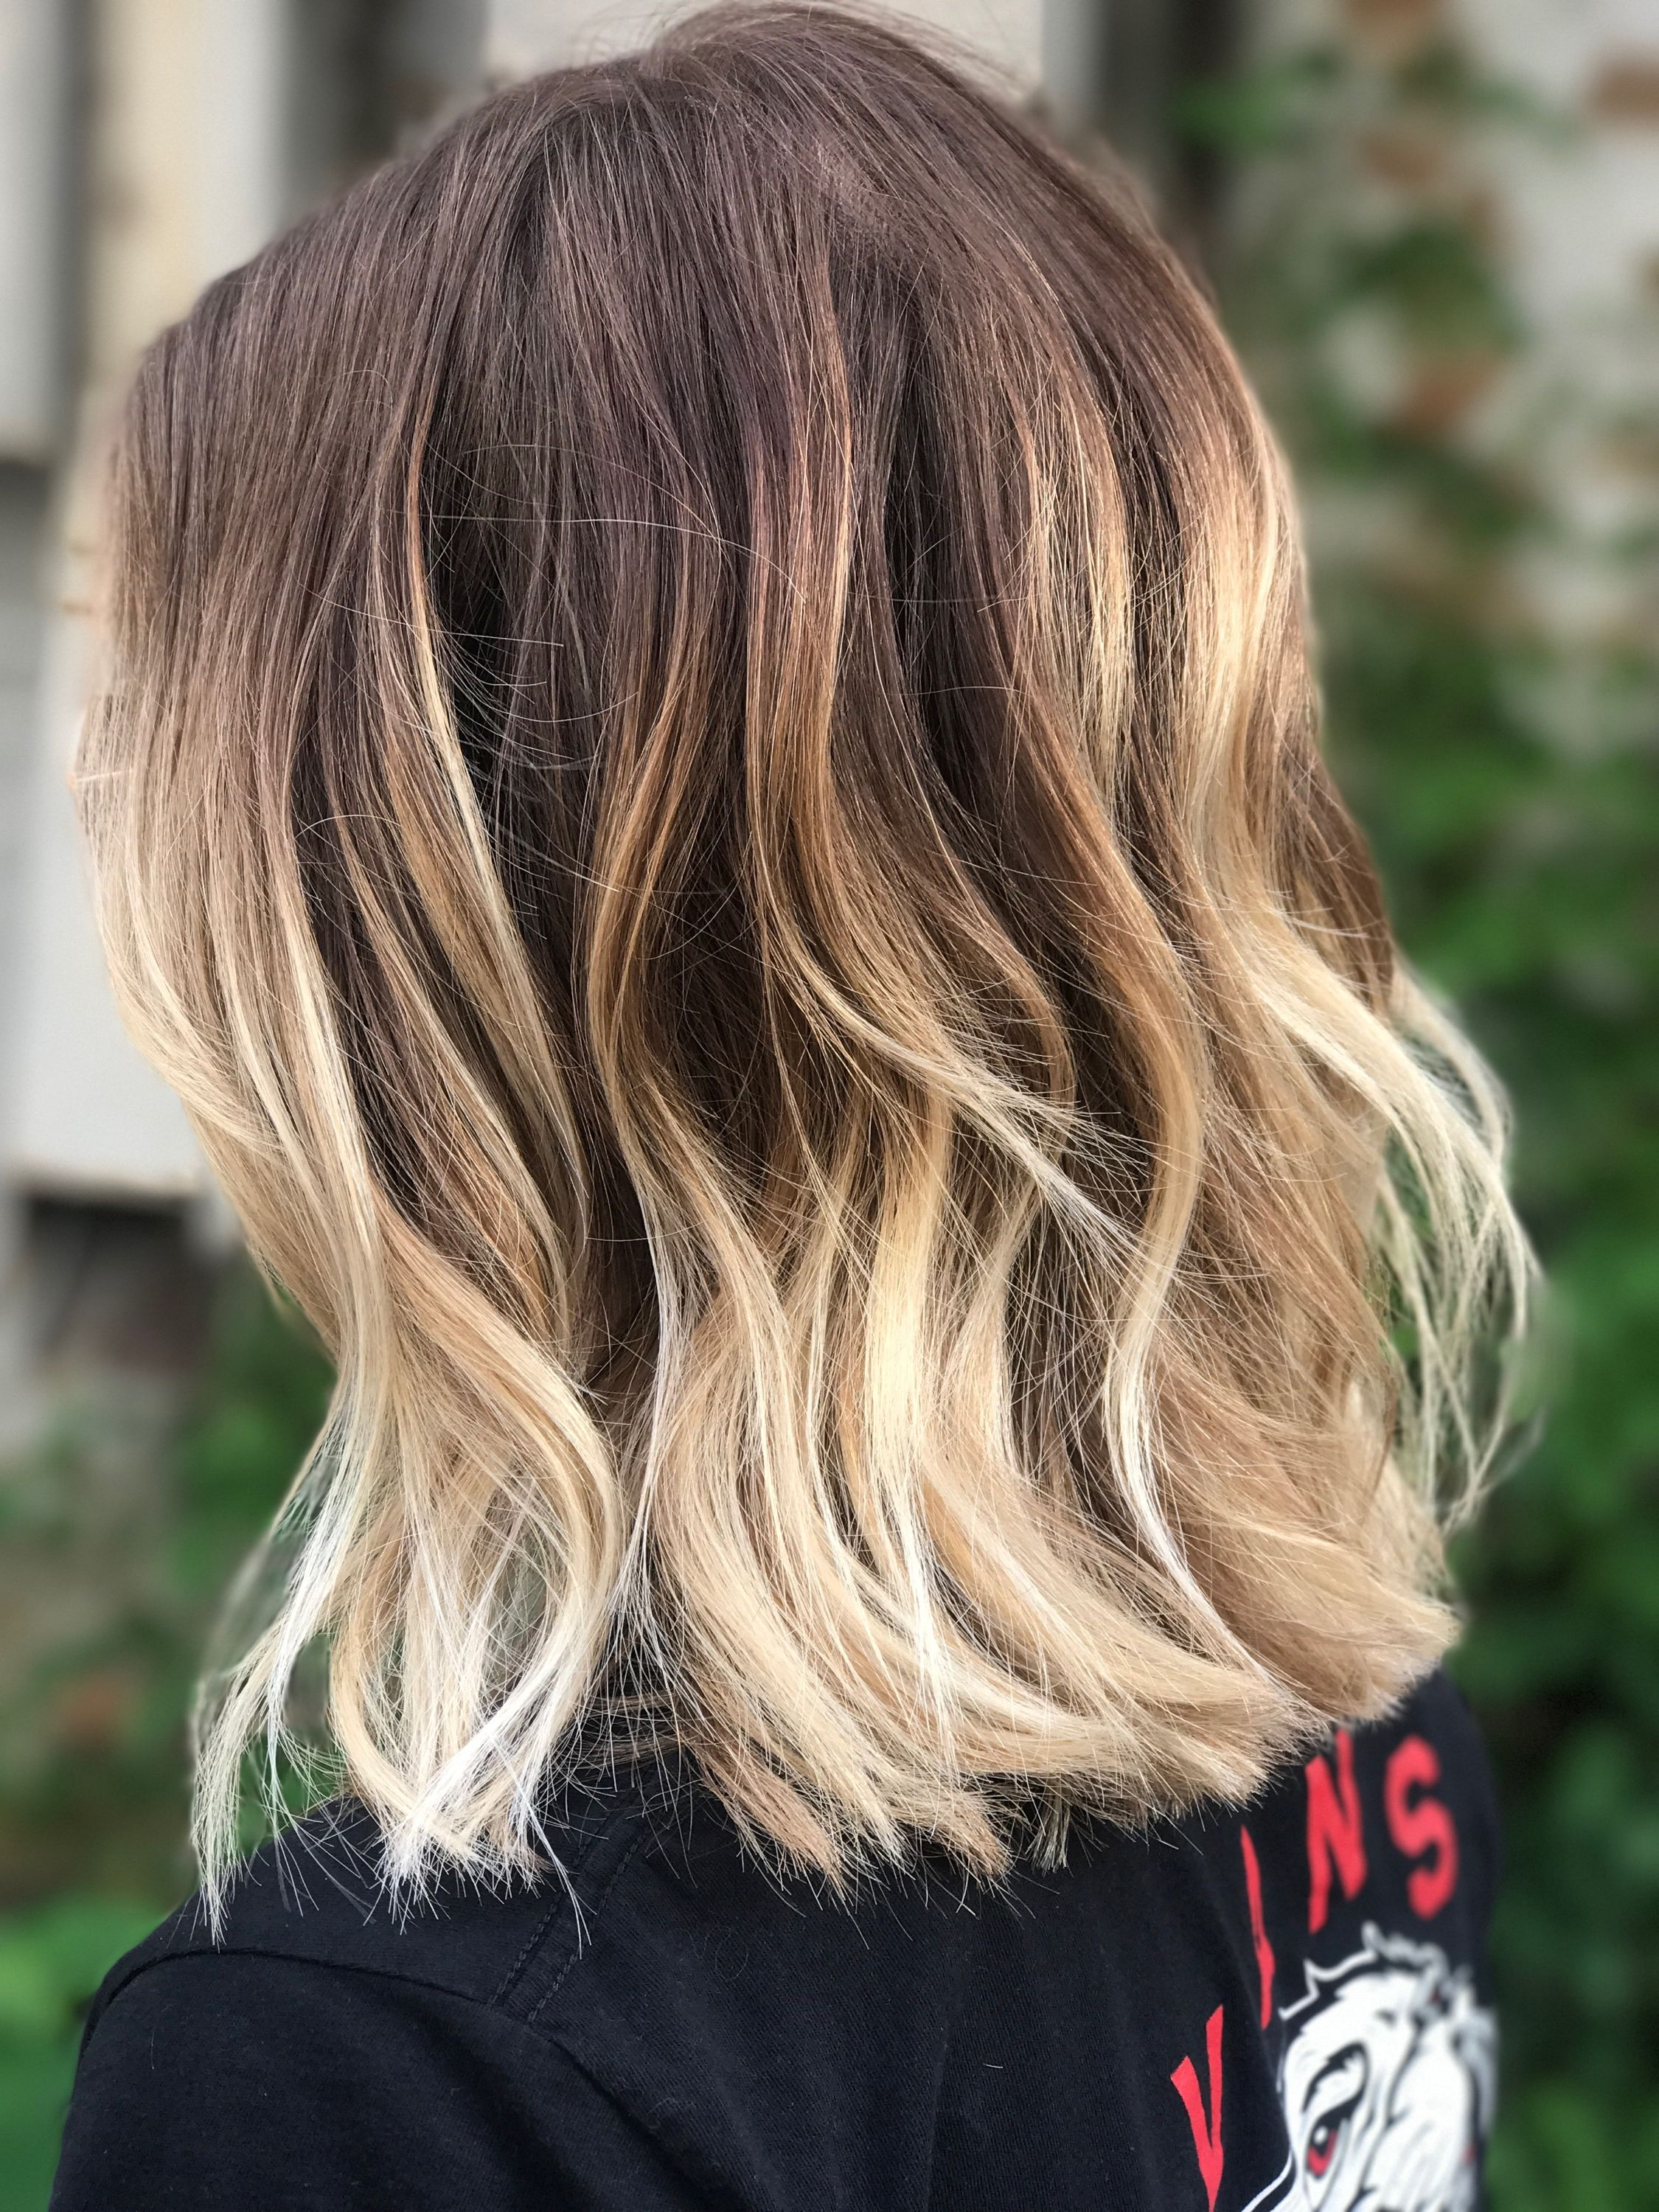 Ombre Bayalage Hair Shorthair Texture Blonde